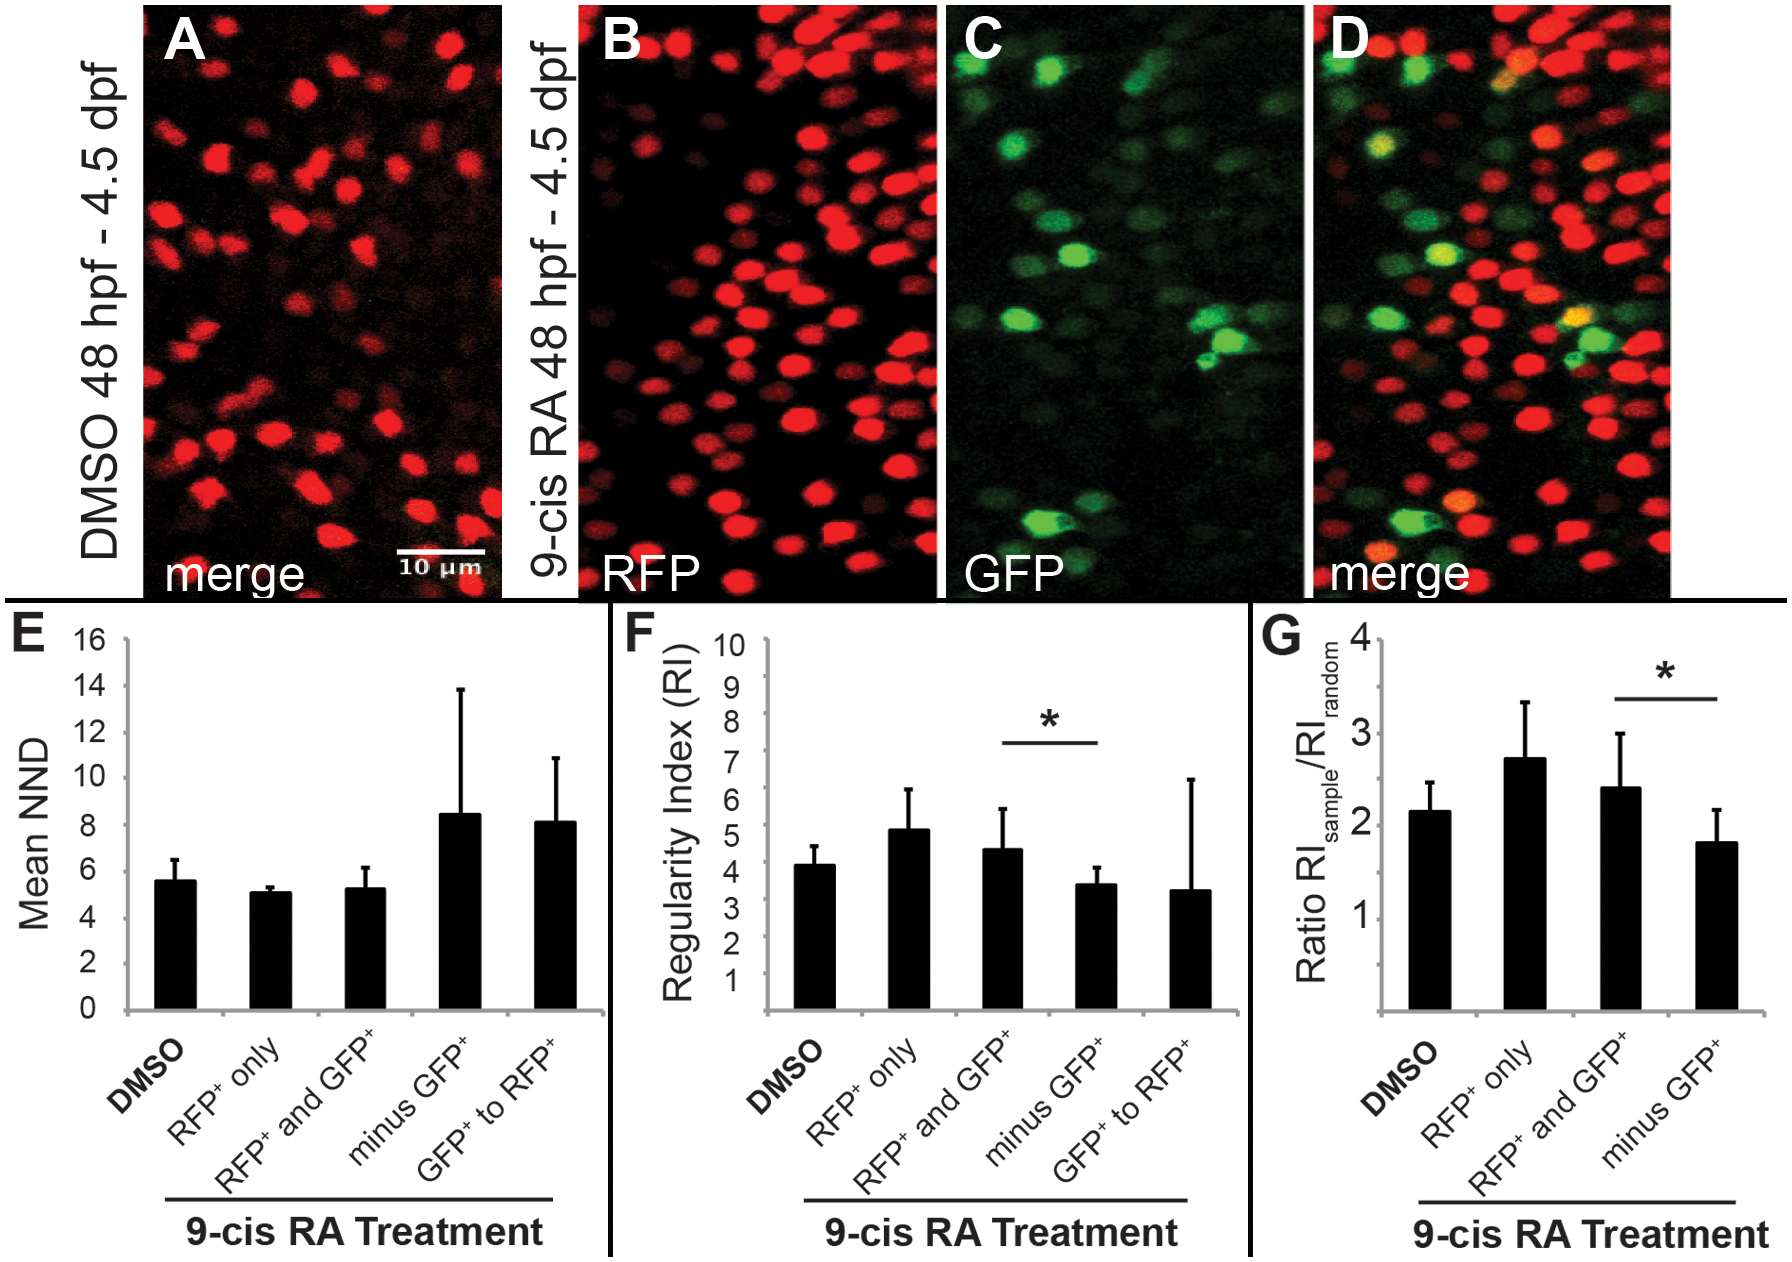 Two-dimensional pattern analysis of LWS cones in <i>LWS</i>:<i>PAC(H)</i> embryos exposed to RA: Retinoic acid induced LWS1-expressing cones do not disrupt the LWS2 cone mosaic.